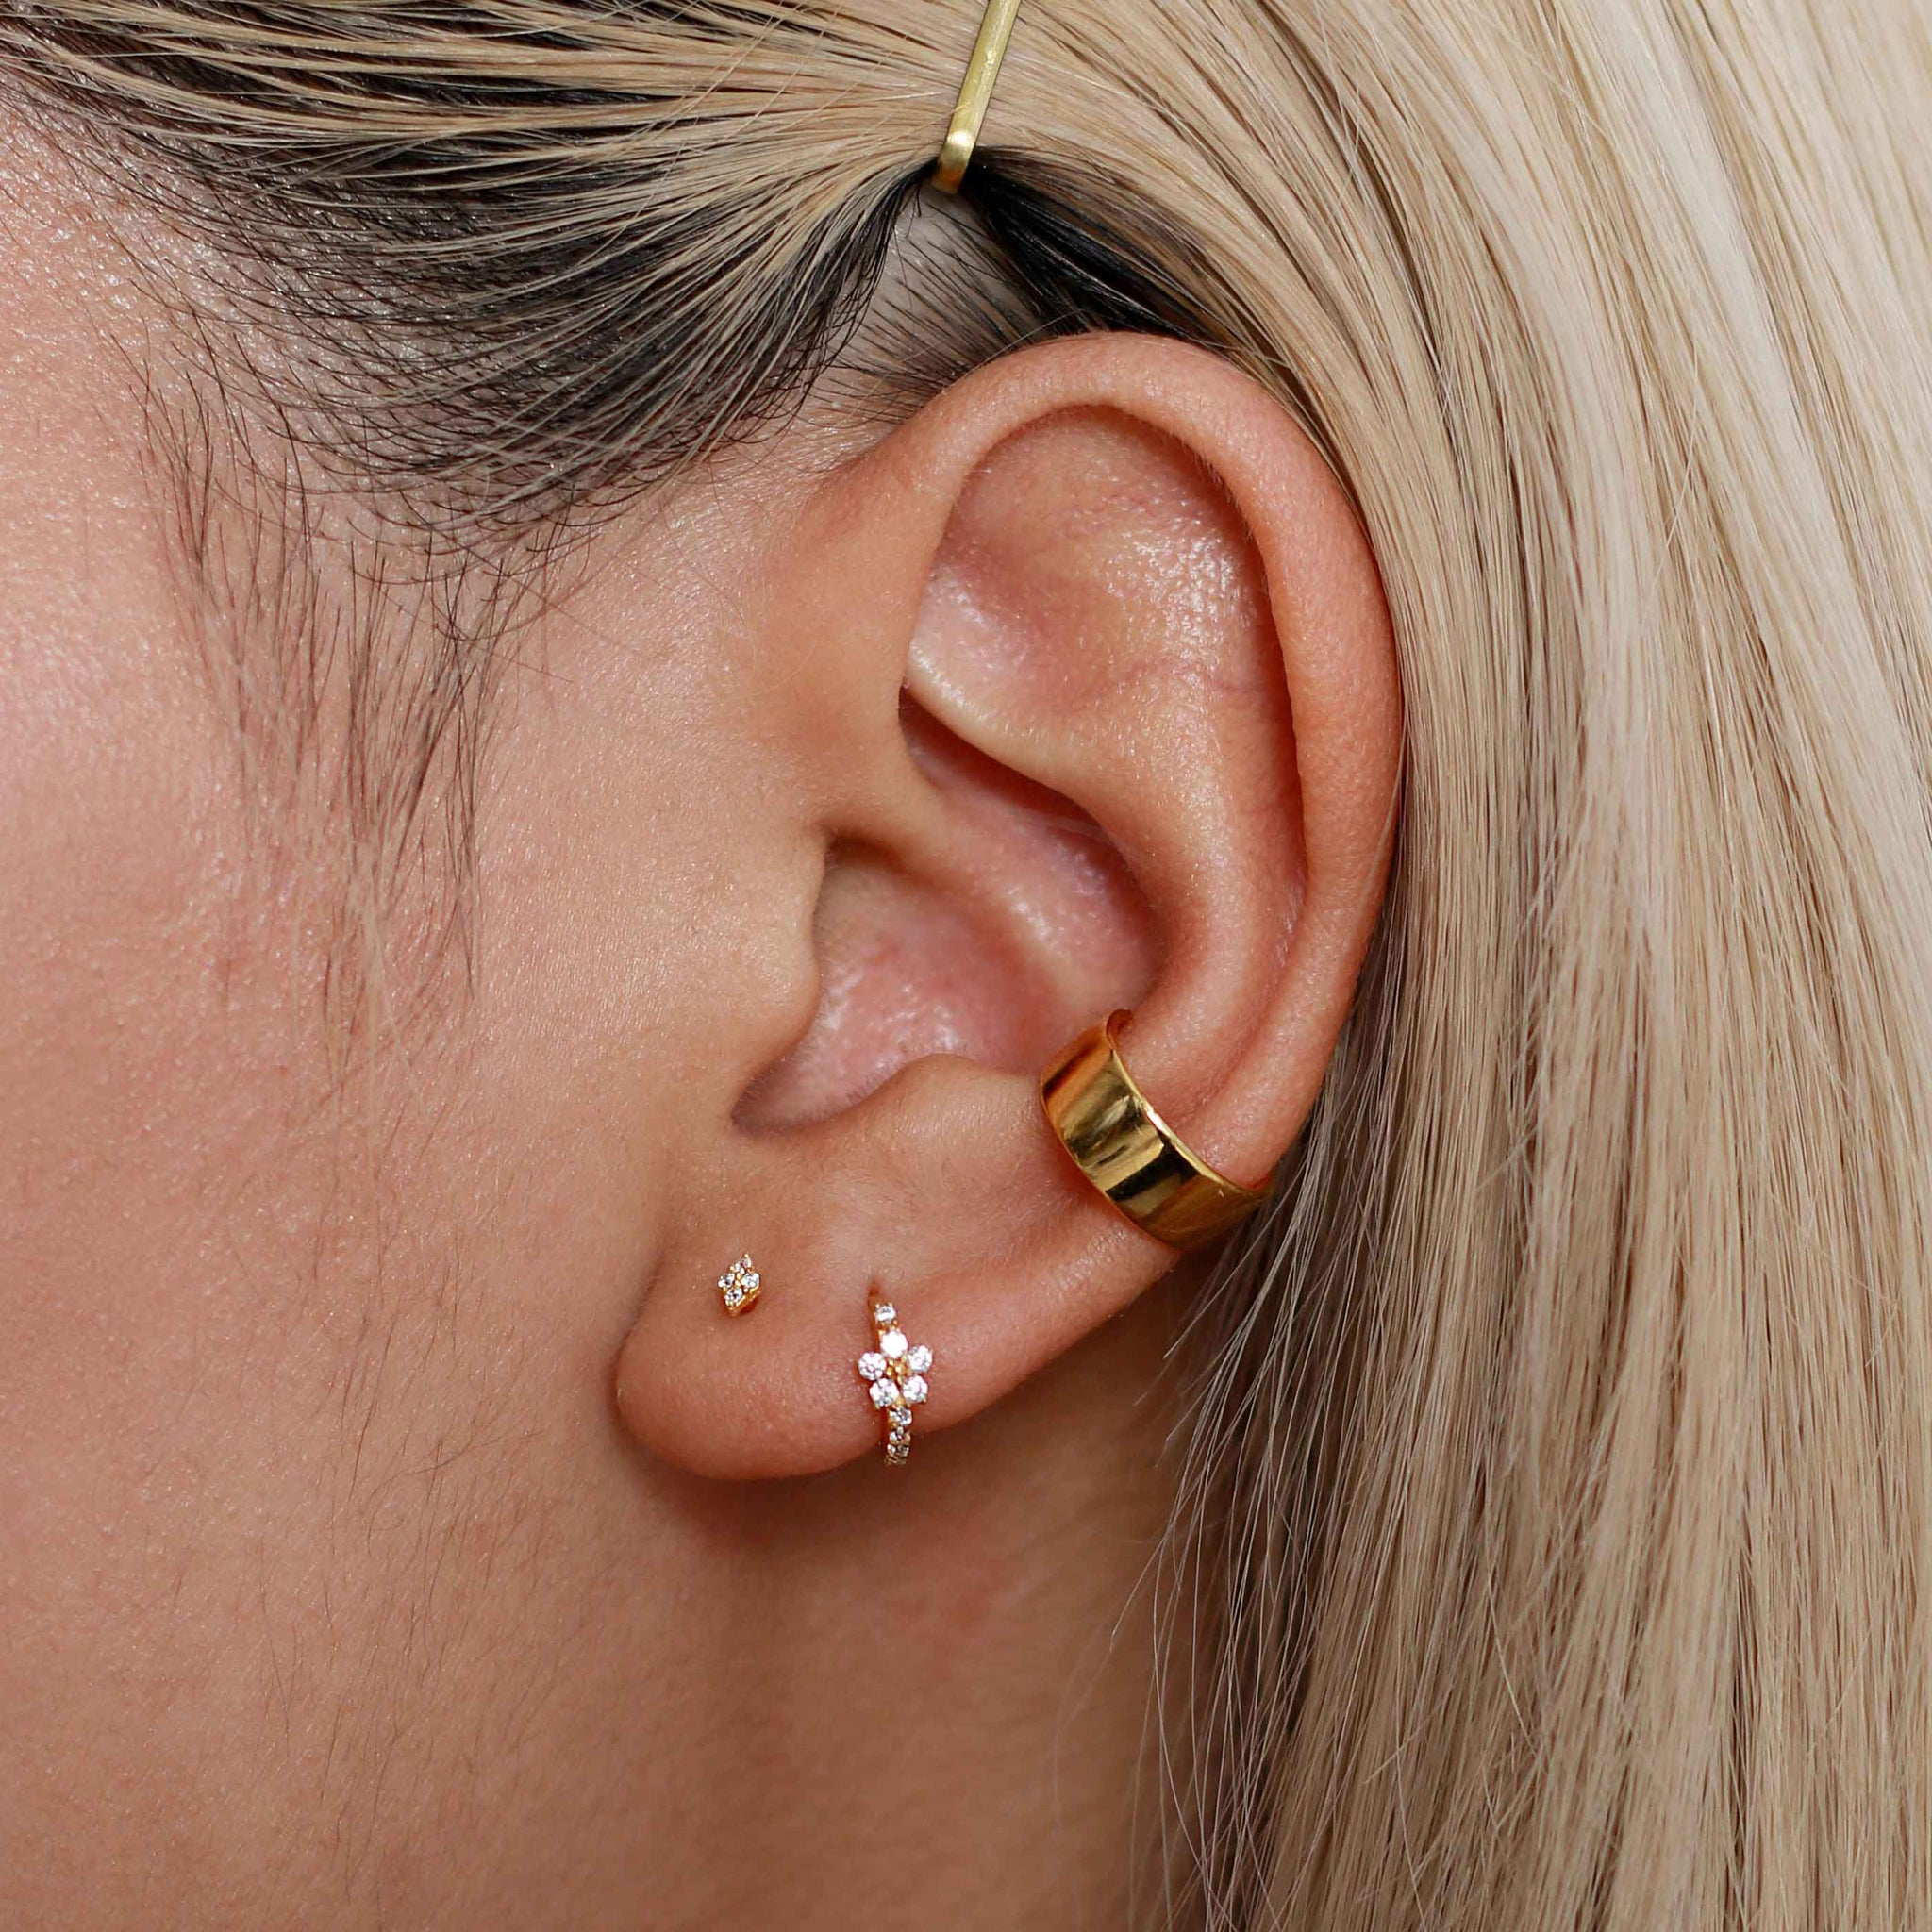 Gem Flower Clicker in Gold worn in second lobe piercing